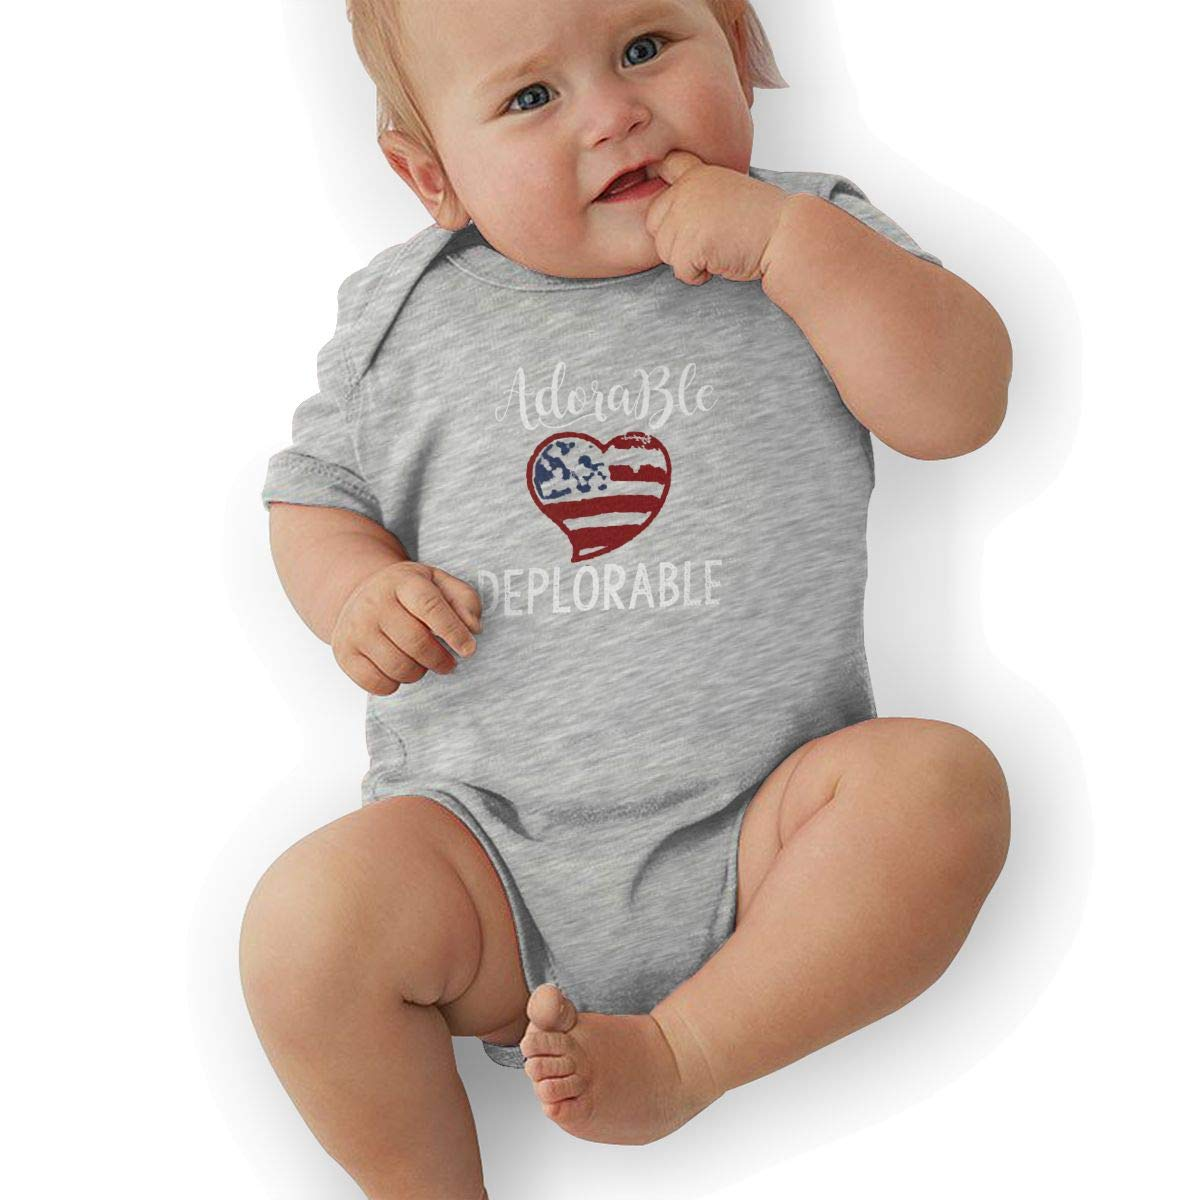 Bodysuits Clothes Onesies Jumpsuits Outfits Black HappyLifea USA Flag Heart Political Adorable Deplorable Baby Pajamas